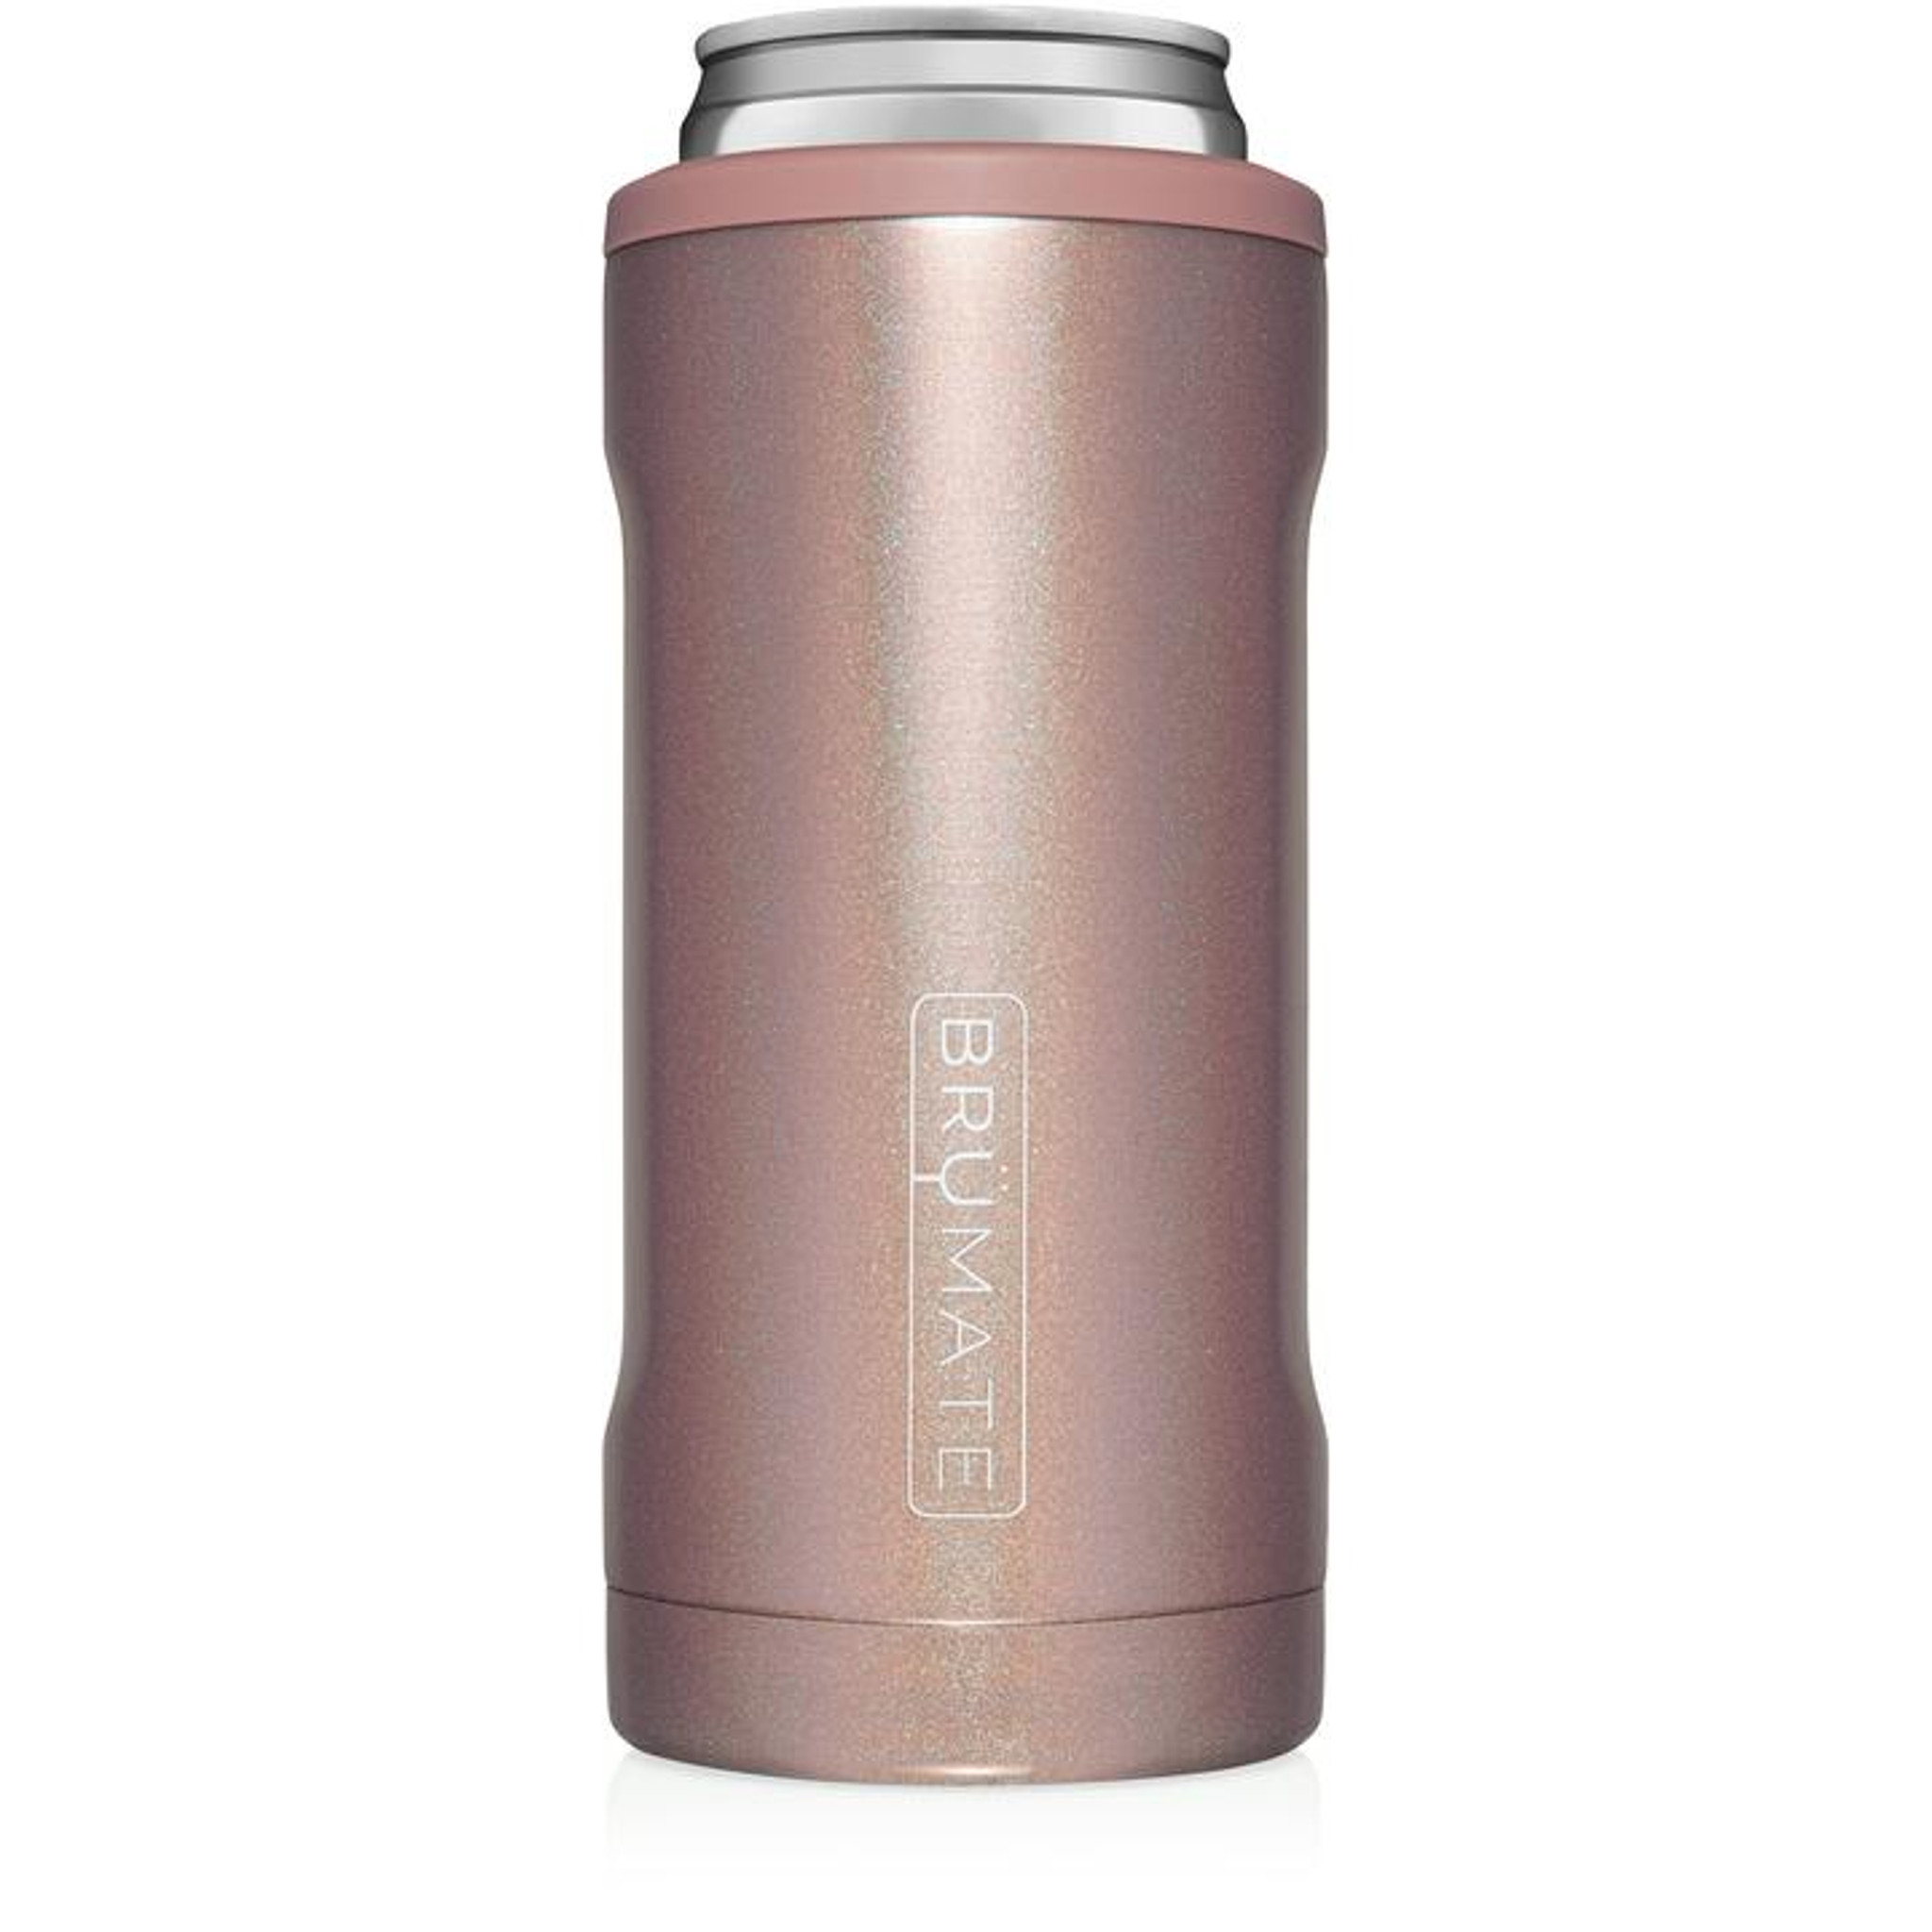 Brumate Slim Hopsulator - Glitter Rose Gold